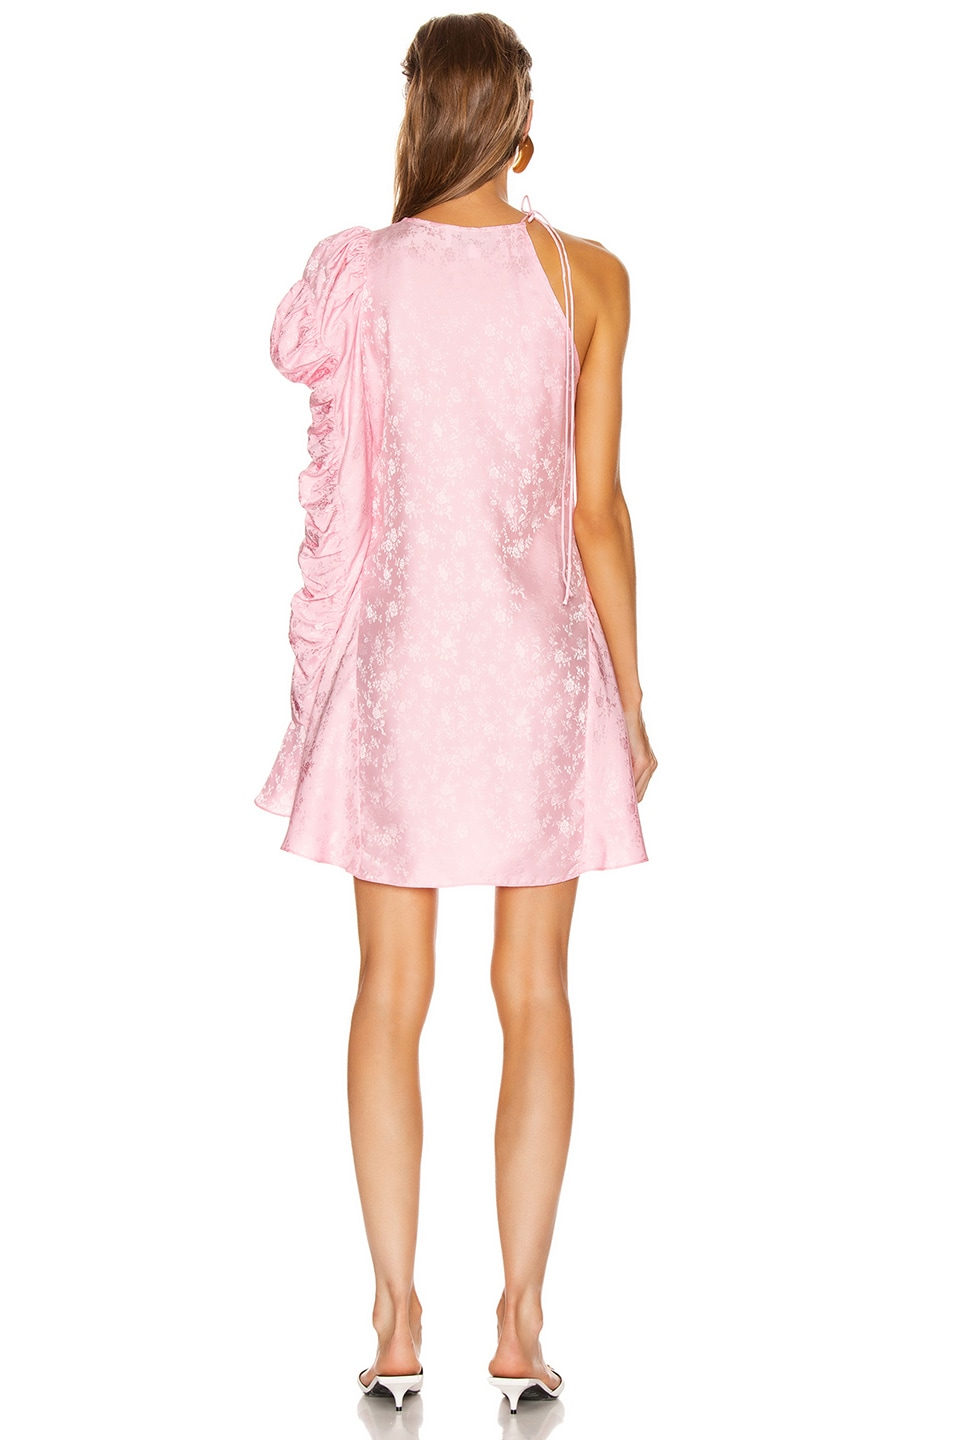 Image 4 of Les Reveries x FWRD Asymmetrical Puff Sleeve Dress in Rose Pink